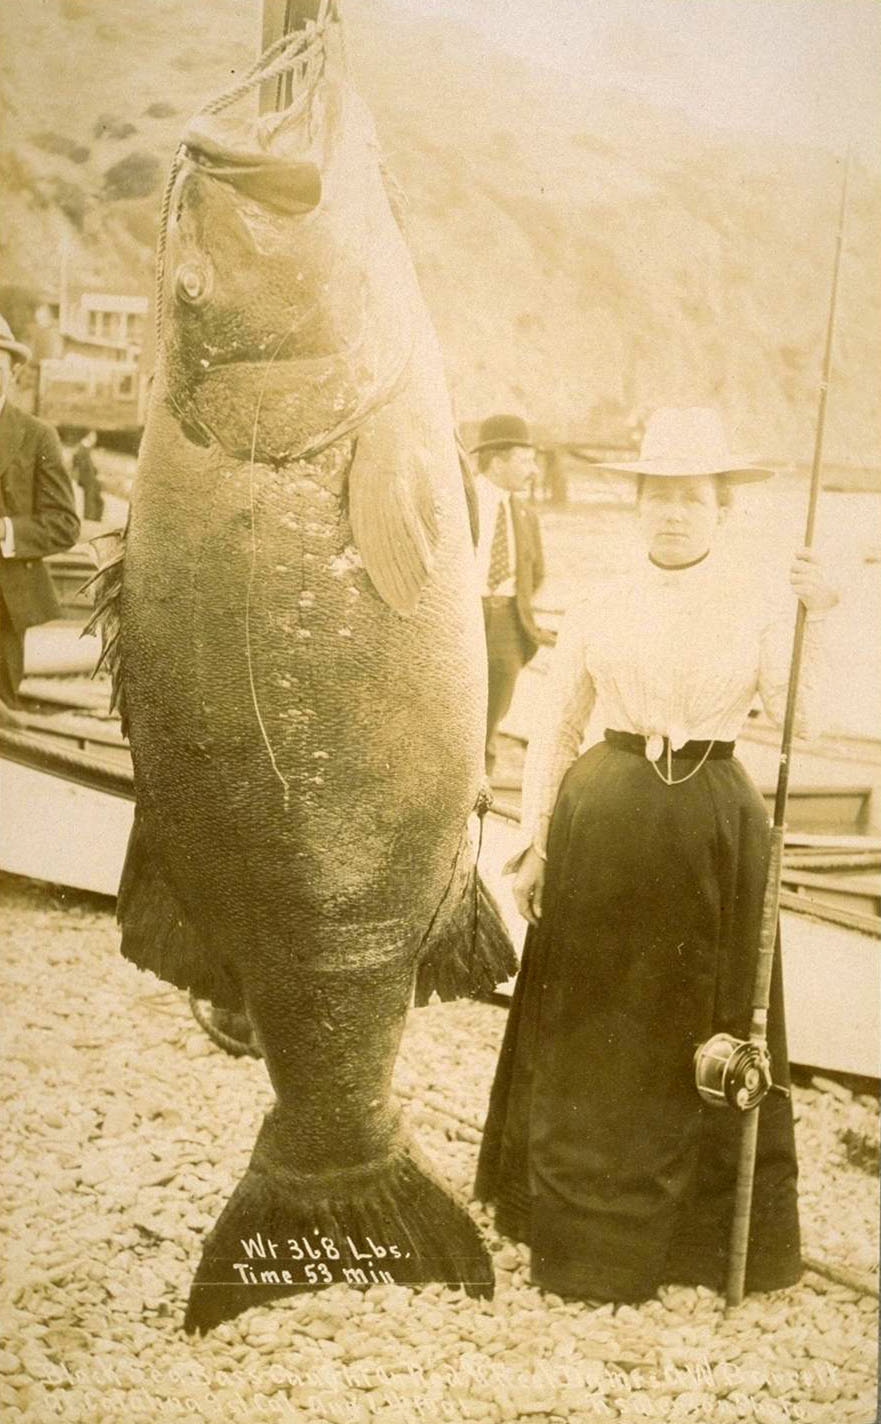 A tuna hanging out with a woman.